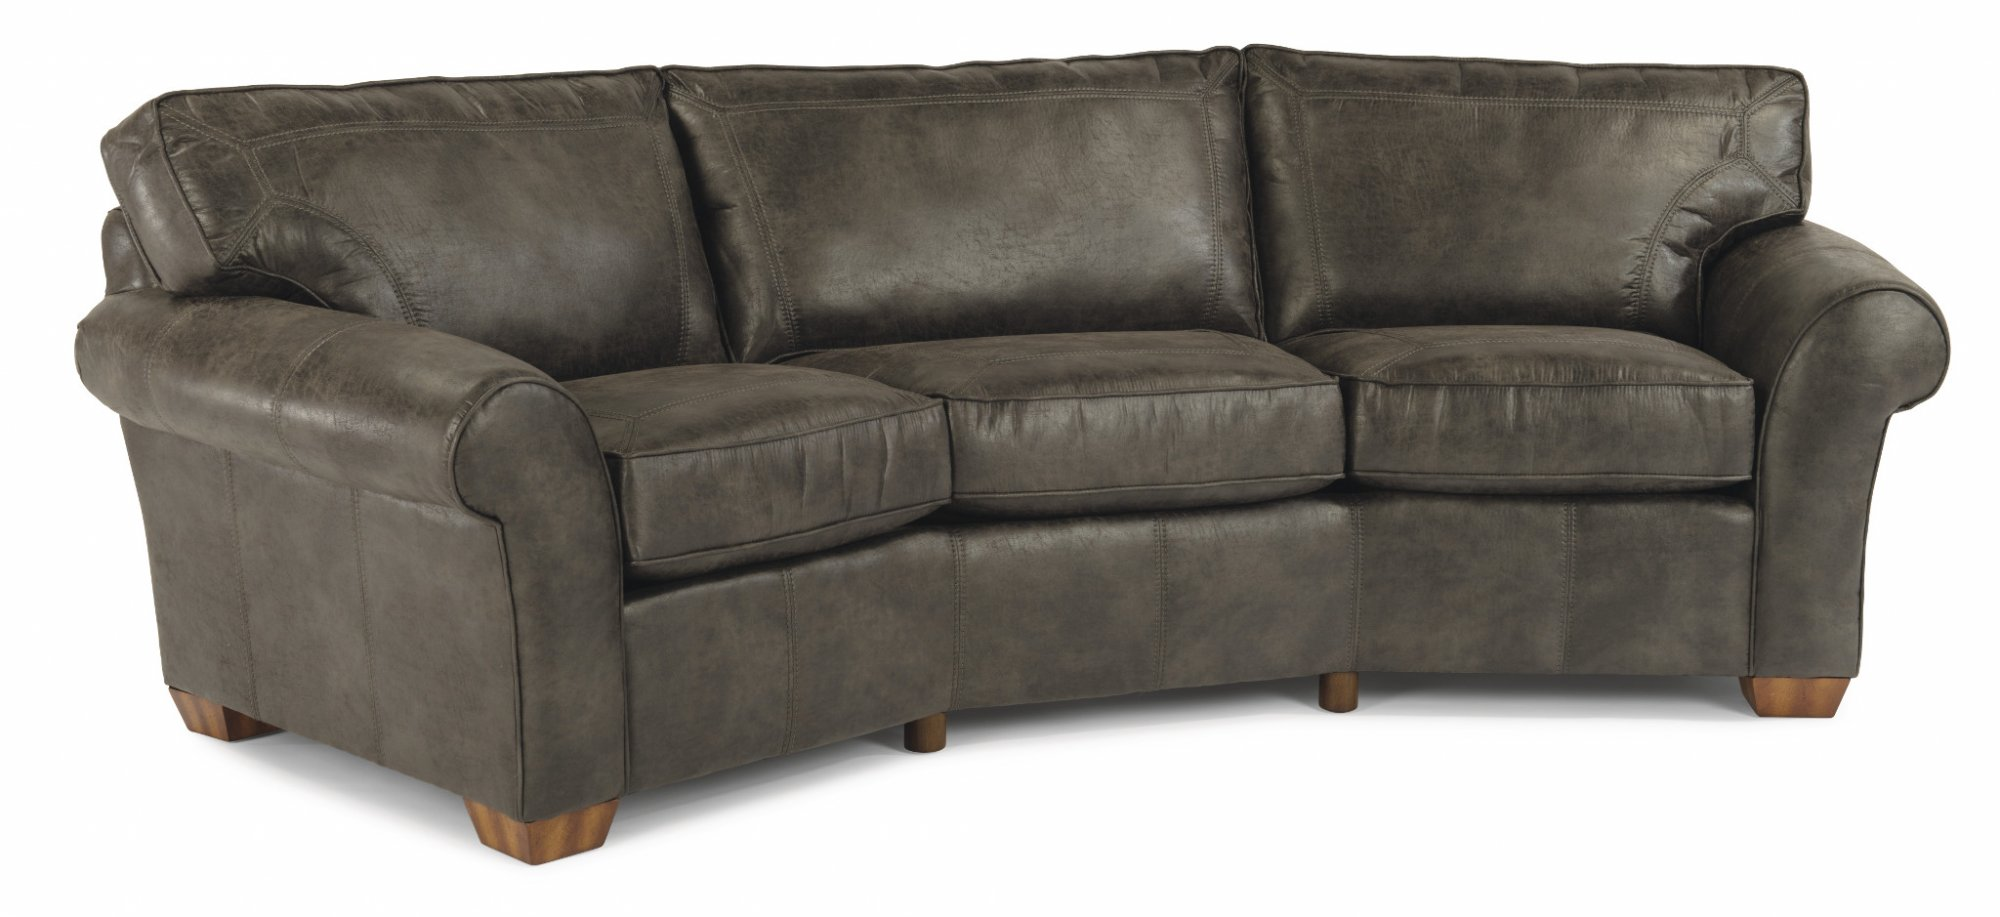 Flexsteel - 3305-323 - Vail Leather Conversation Sofa | Park ...